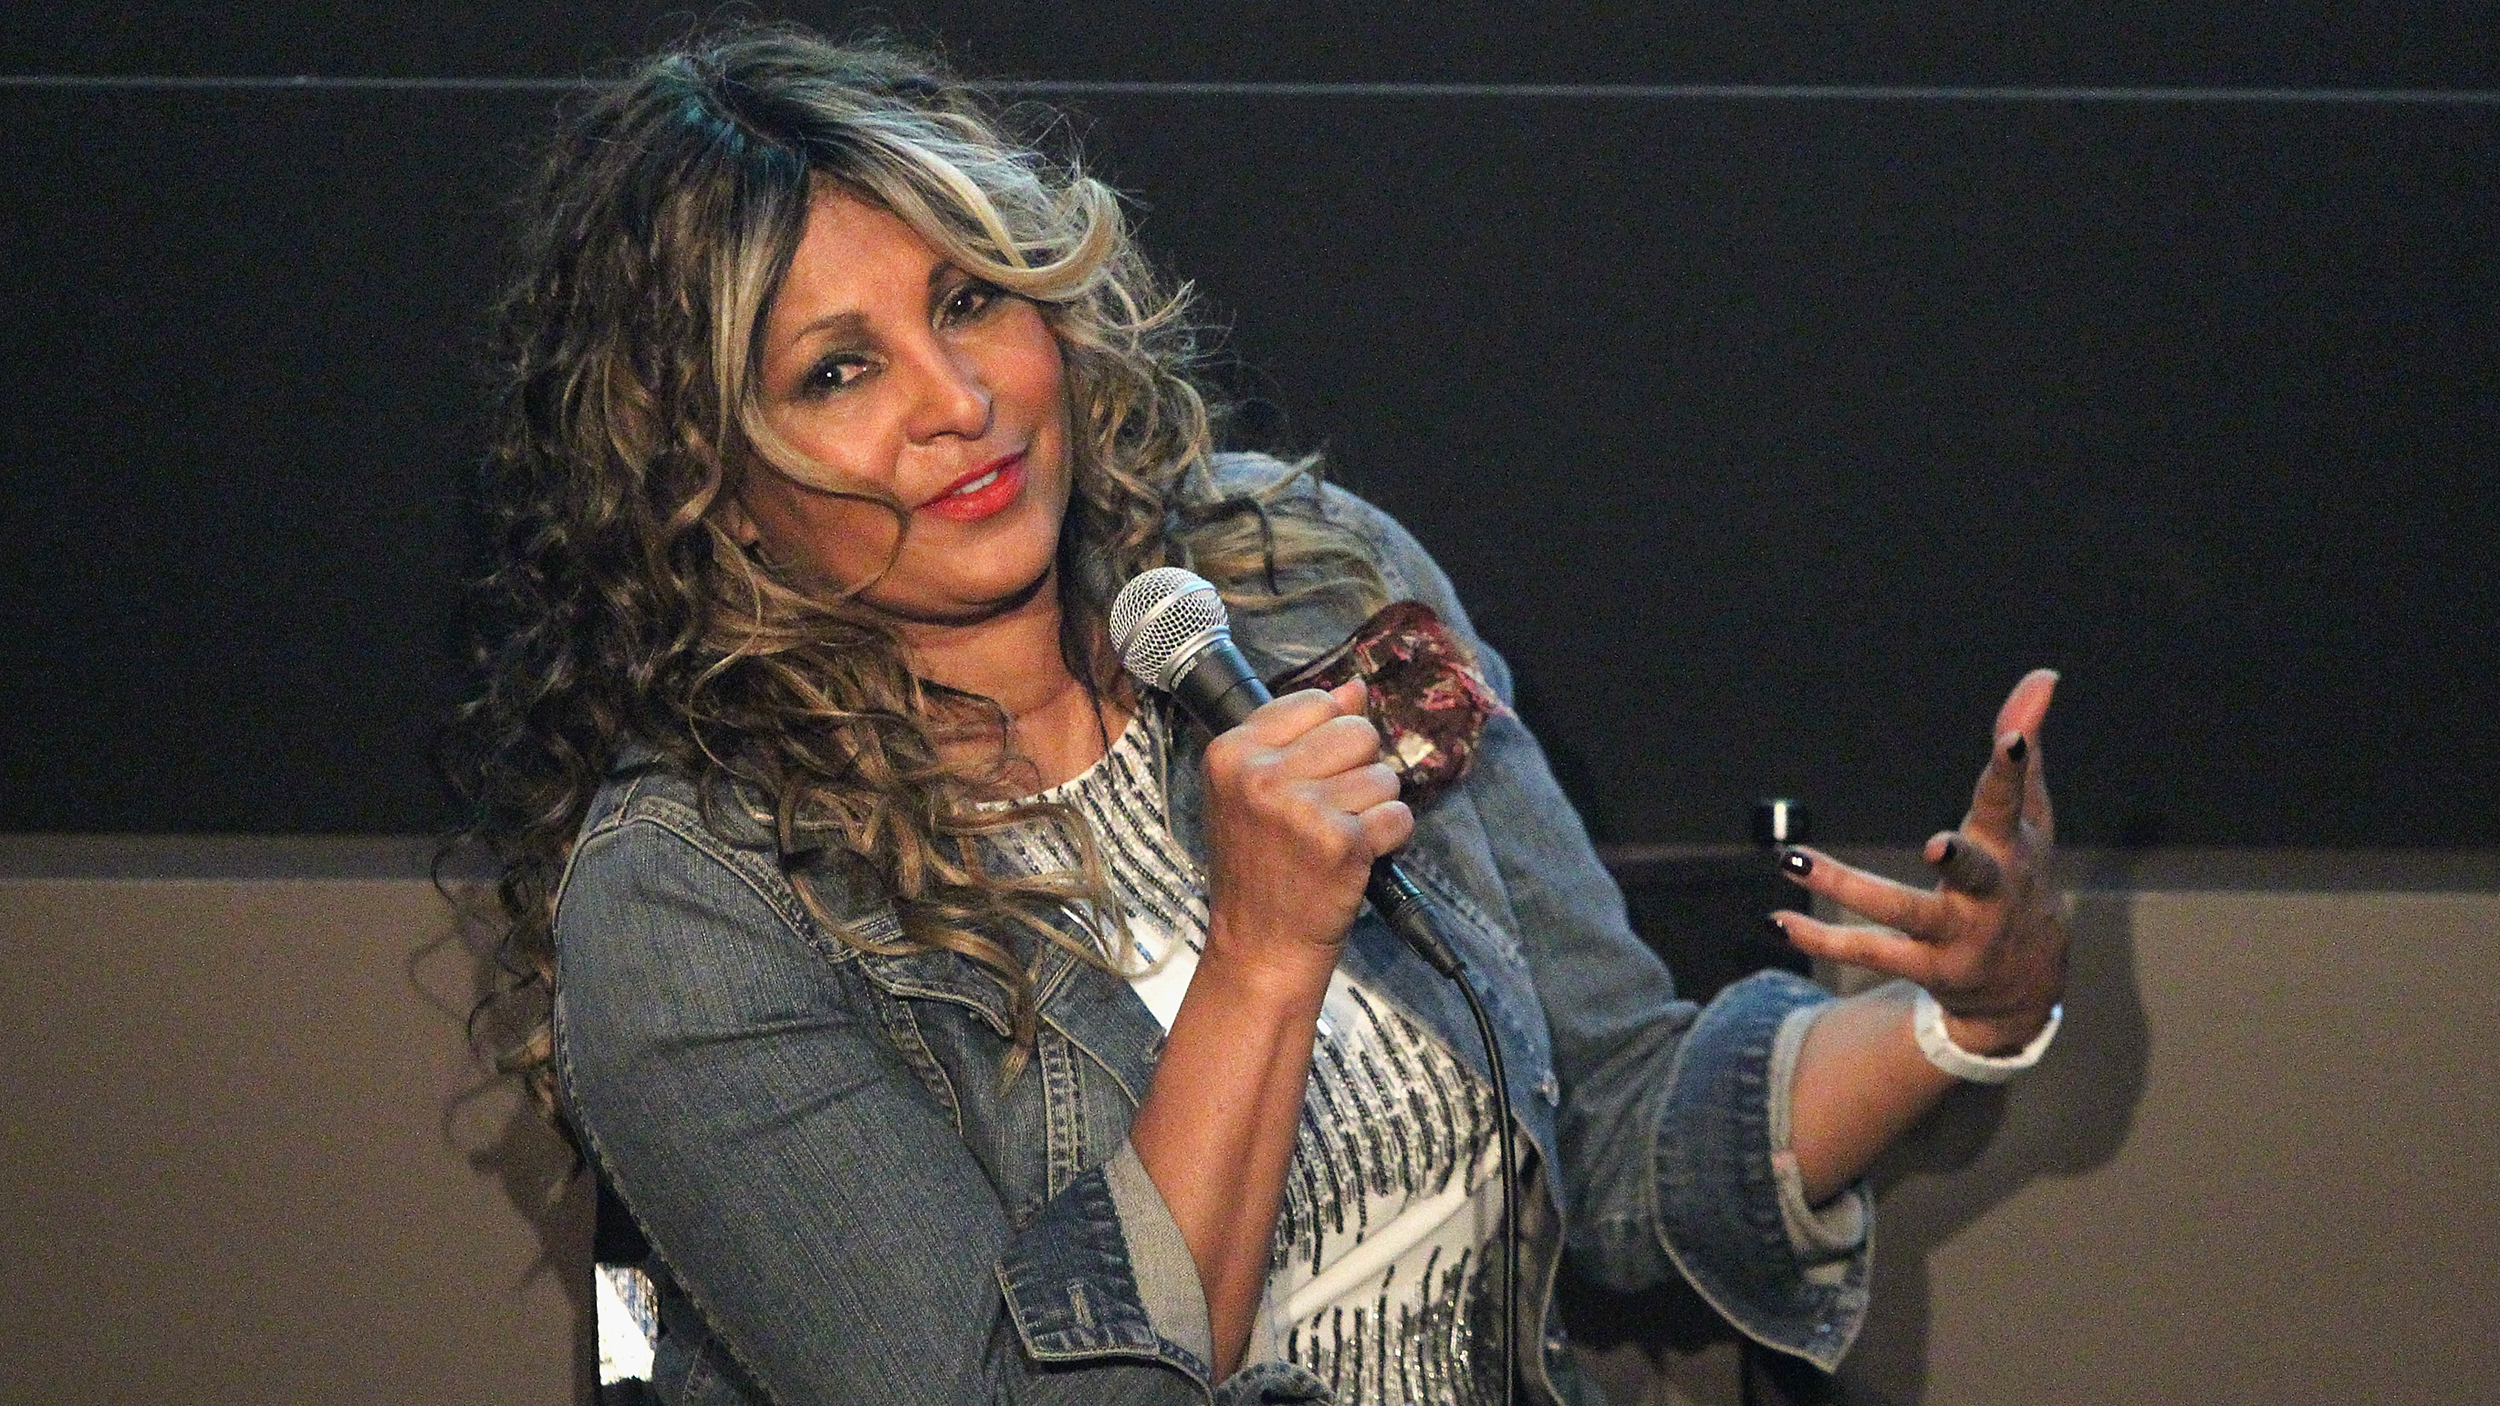 Bikini Pam Grier nudes (85 foto and video), Sexy, Is a cute, Boobs, legs 2019